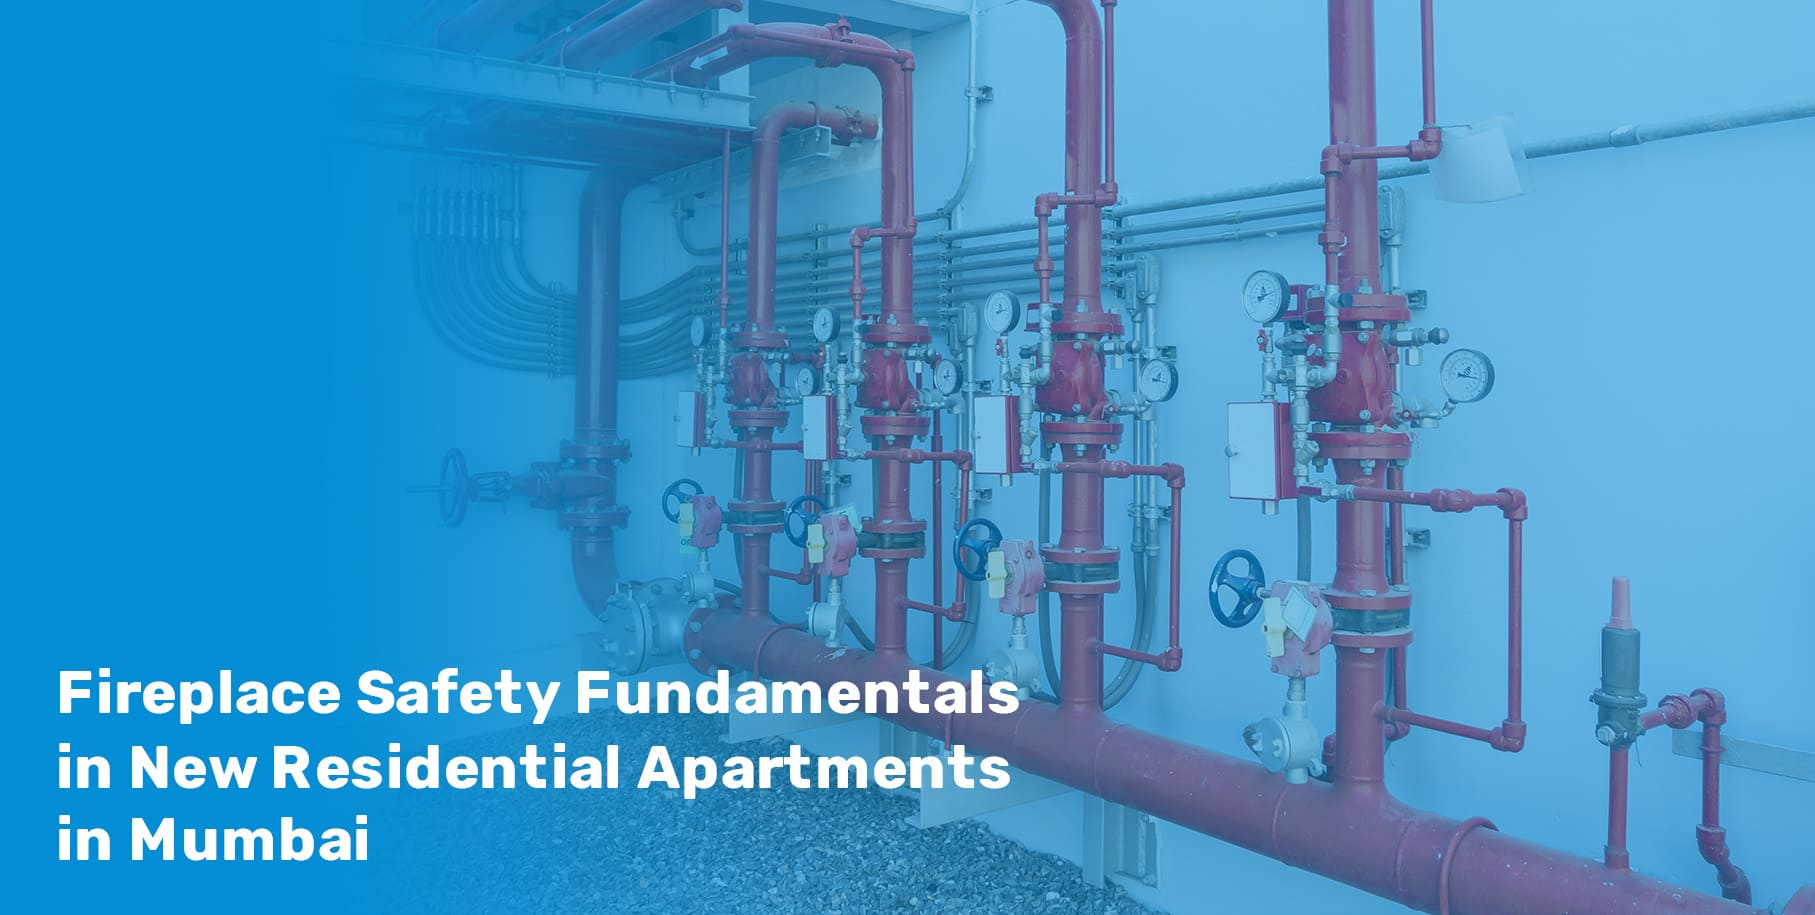 Fire Safety Fundamentals in New Residential Apartments in Mumbai